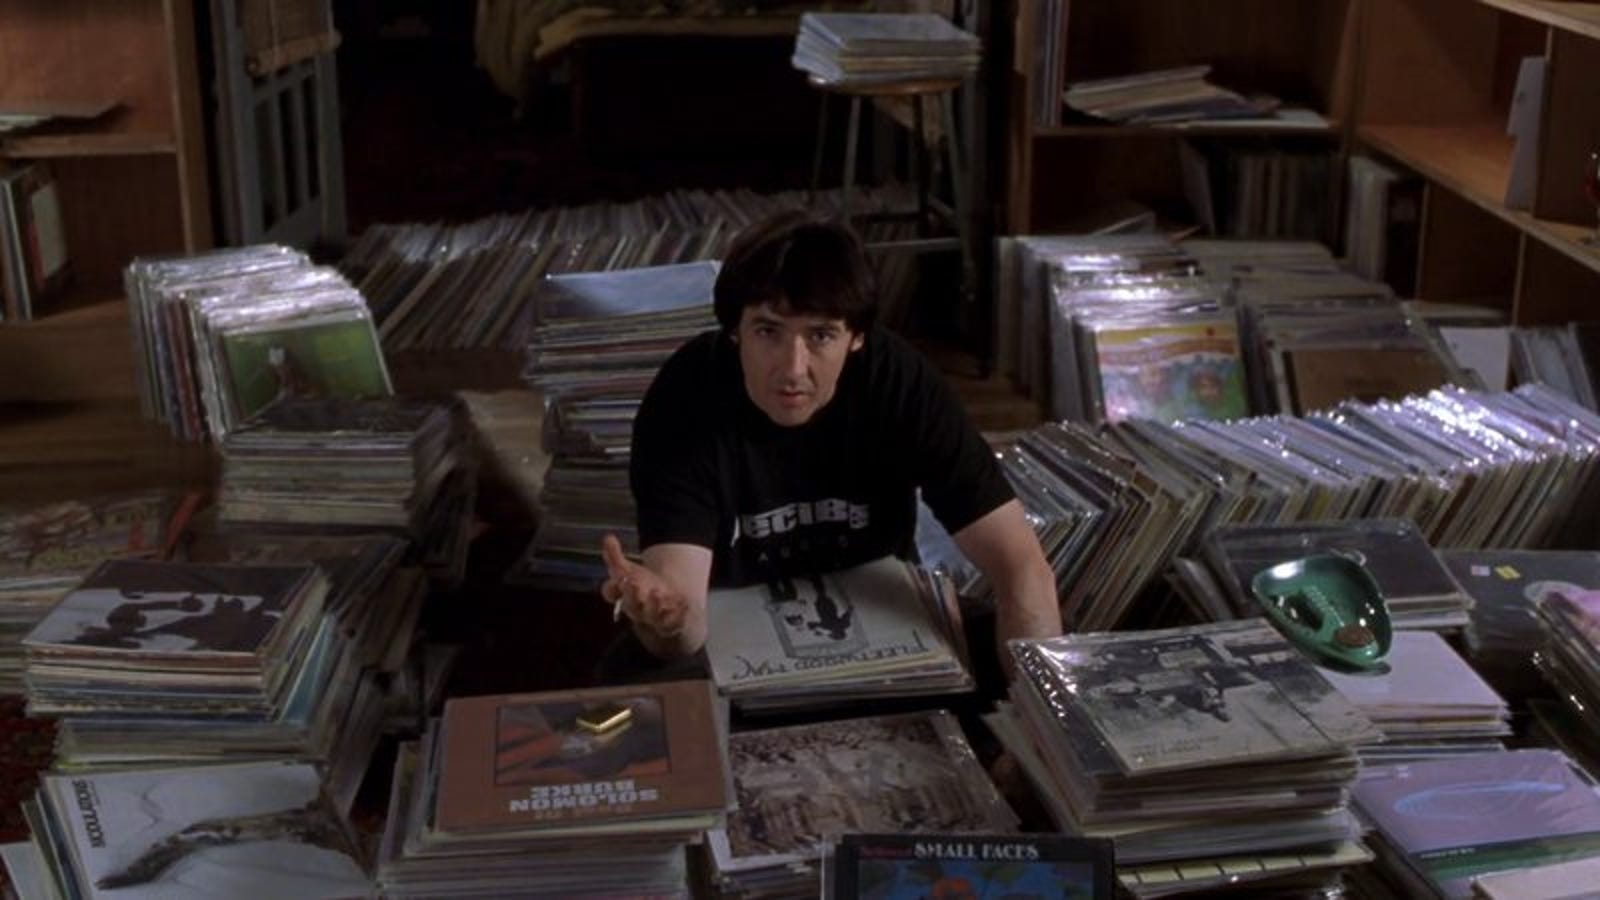 High Fidelity captured the snob's—and the soundtrack's